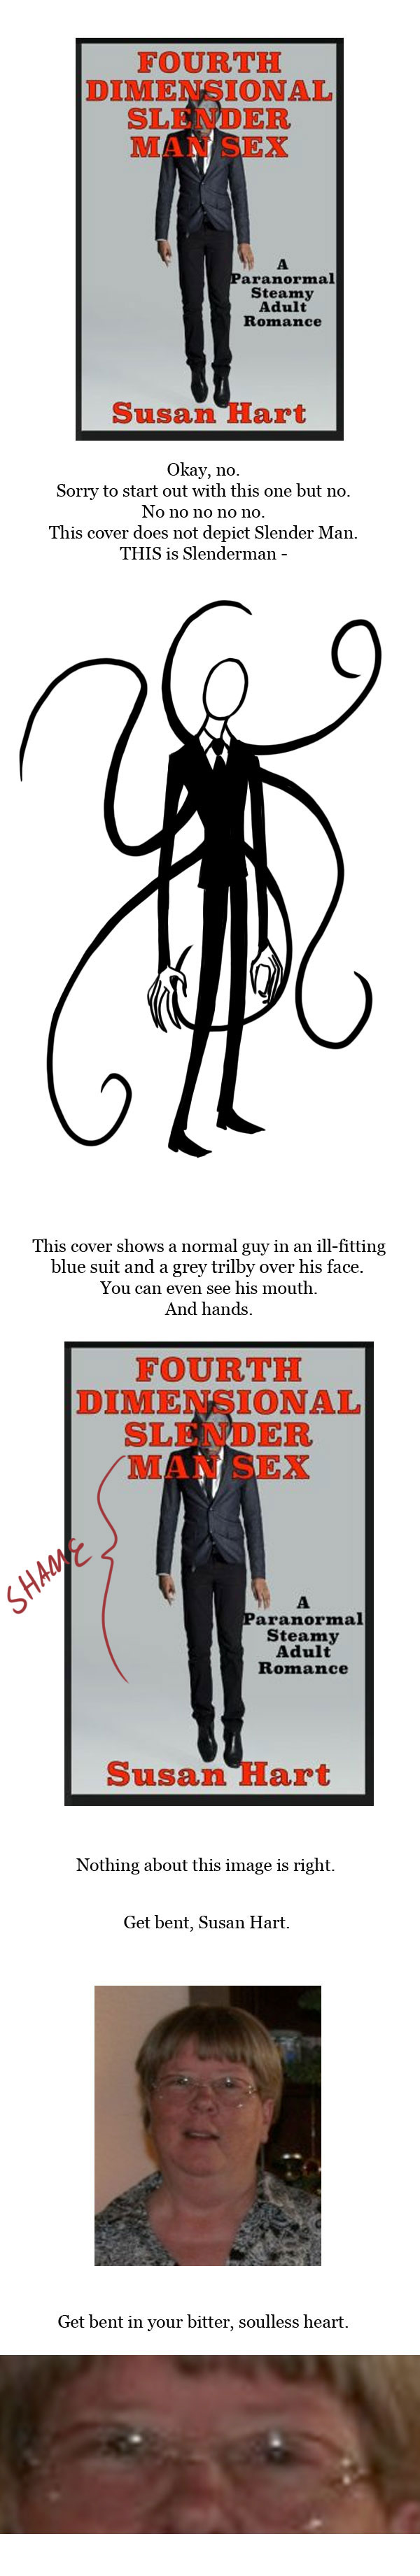 4th Dimensional Slenderman Sex